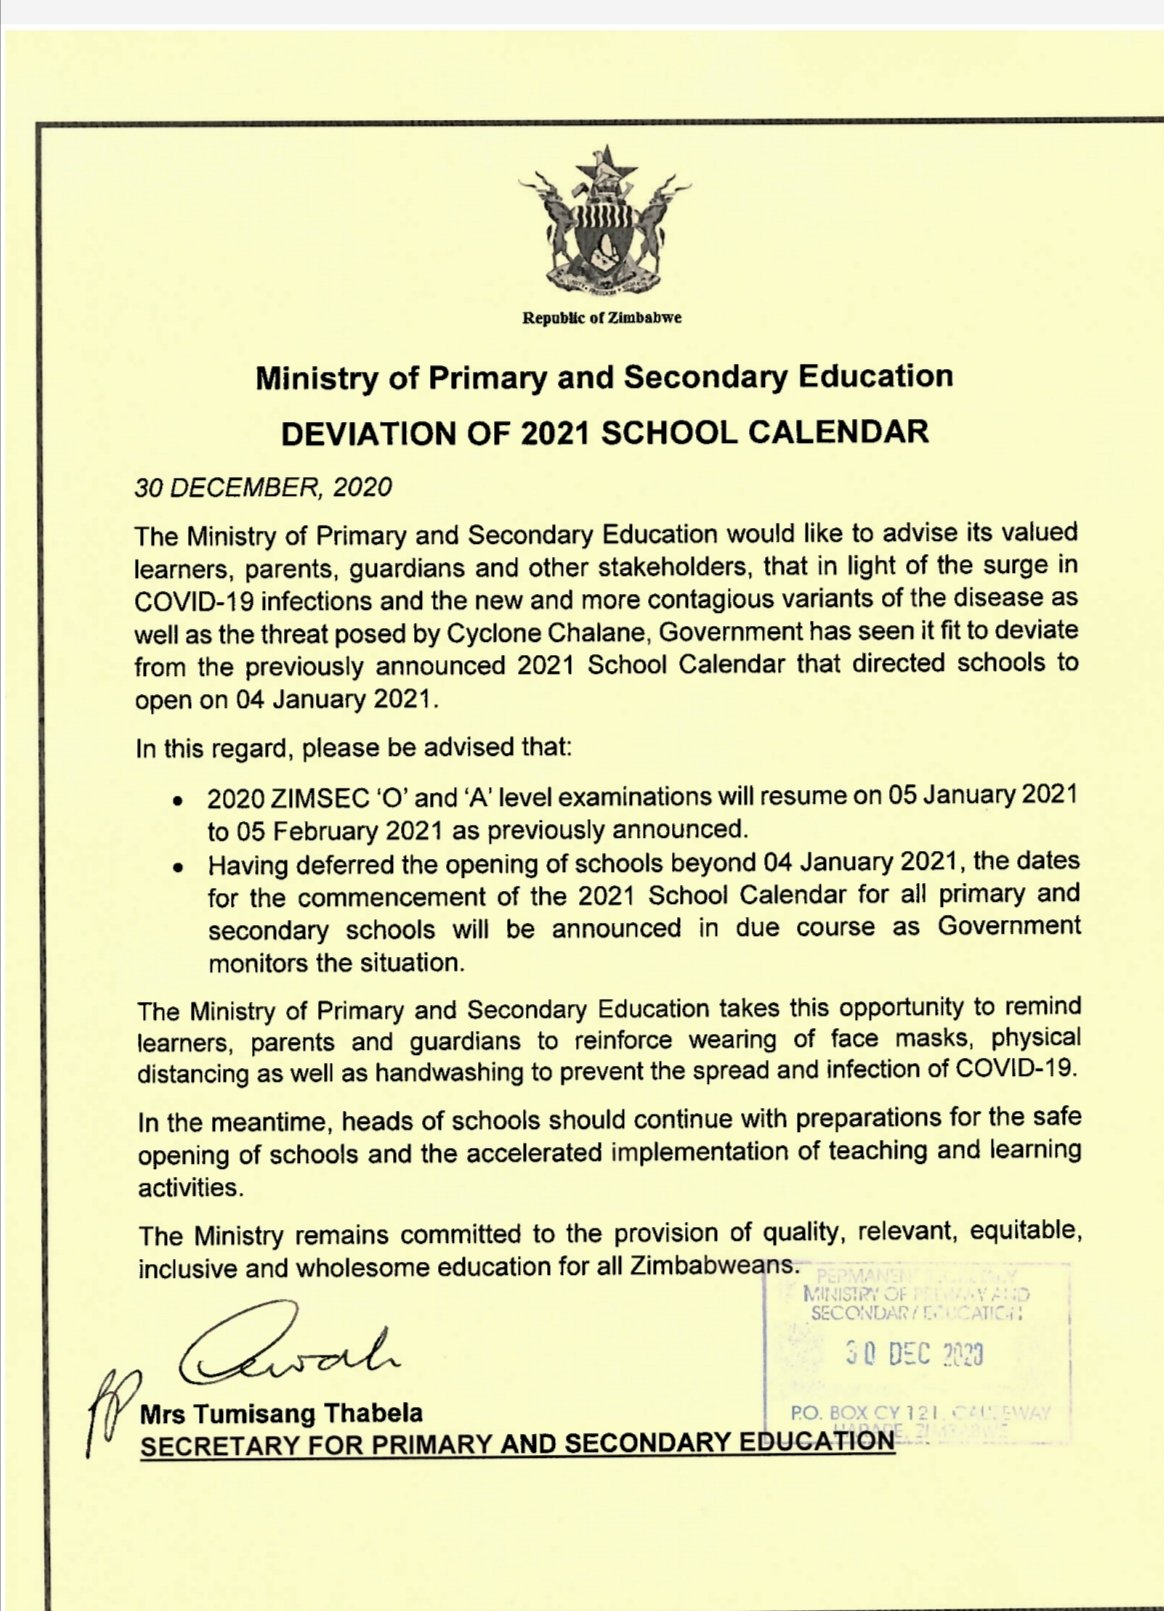 Government Postpones Opening Of Schools